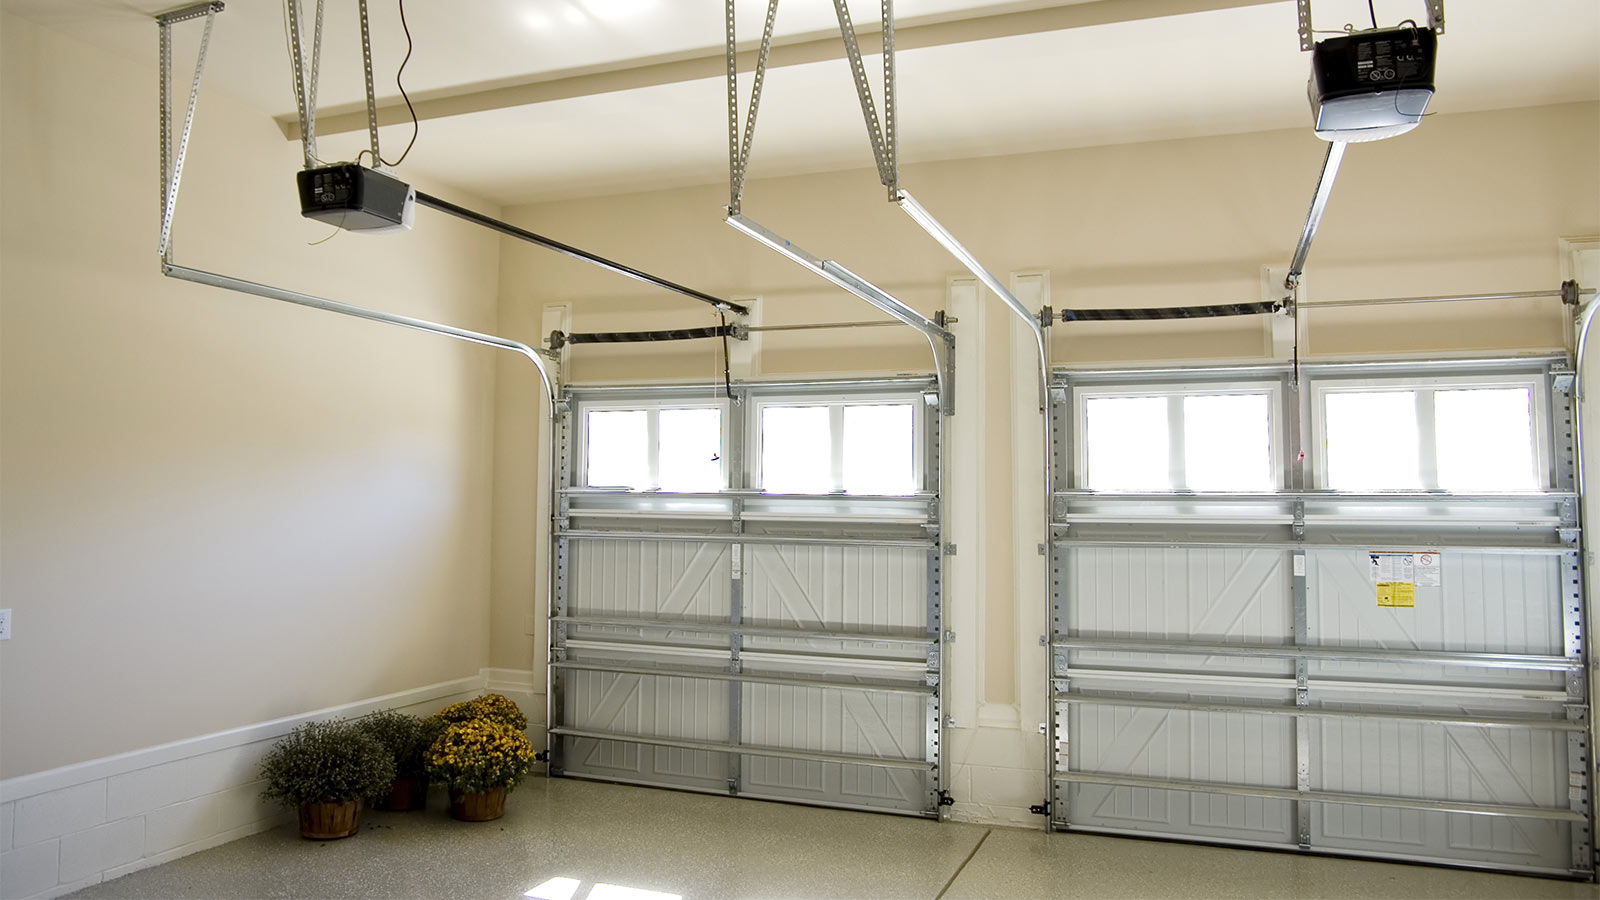 Sectional Garage Doors from High Speed Roller Shutters Clacton suppliers.